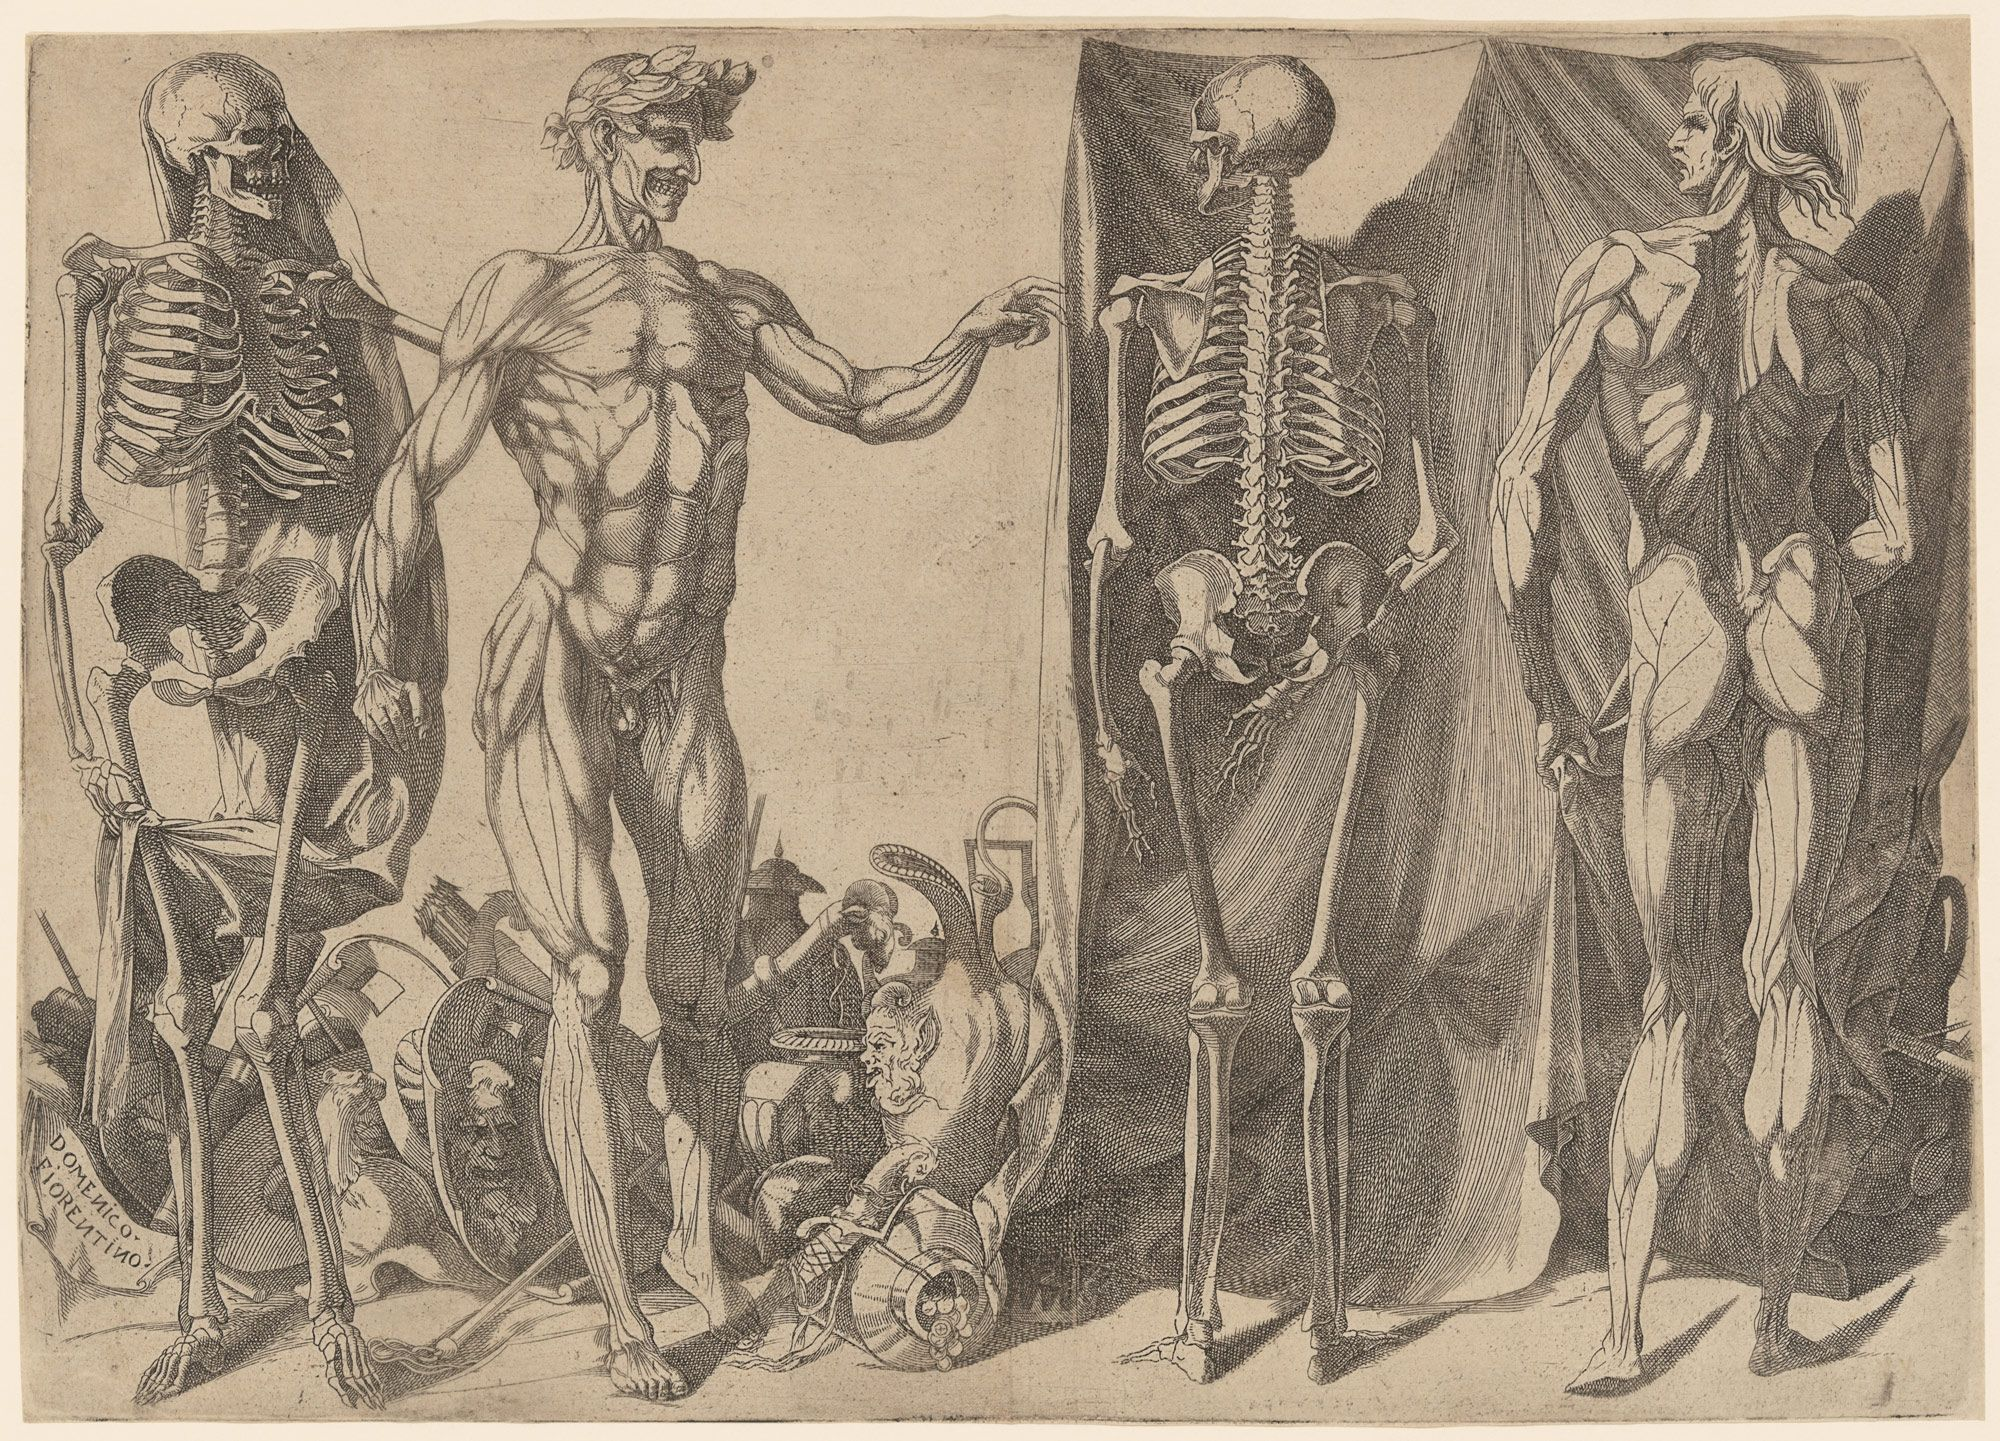 Two Flayed Men And Their Skeletons  She Blinded Me With Science  Two Flayed Men And Their Skeletons  Domenico Del Barbiere  Anatomy Art  Anatomy Letter Writing Help Online also Custom Writiing Com  Argument Essay Thesis Statement